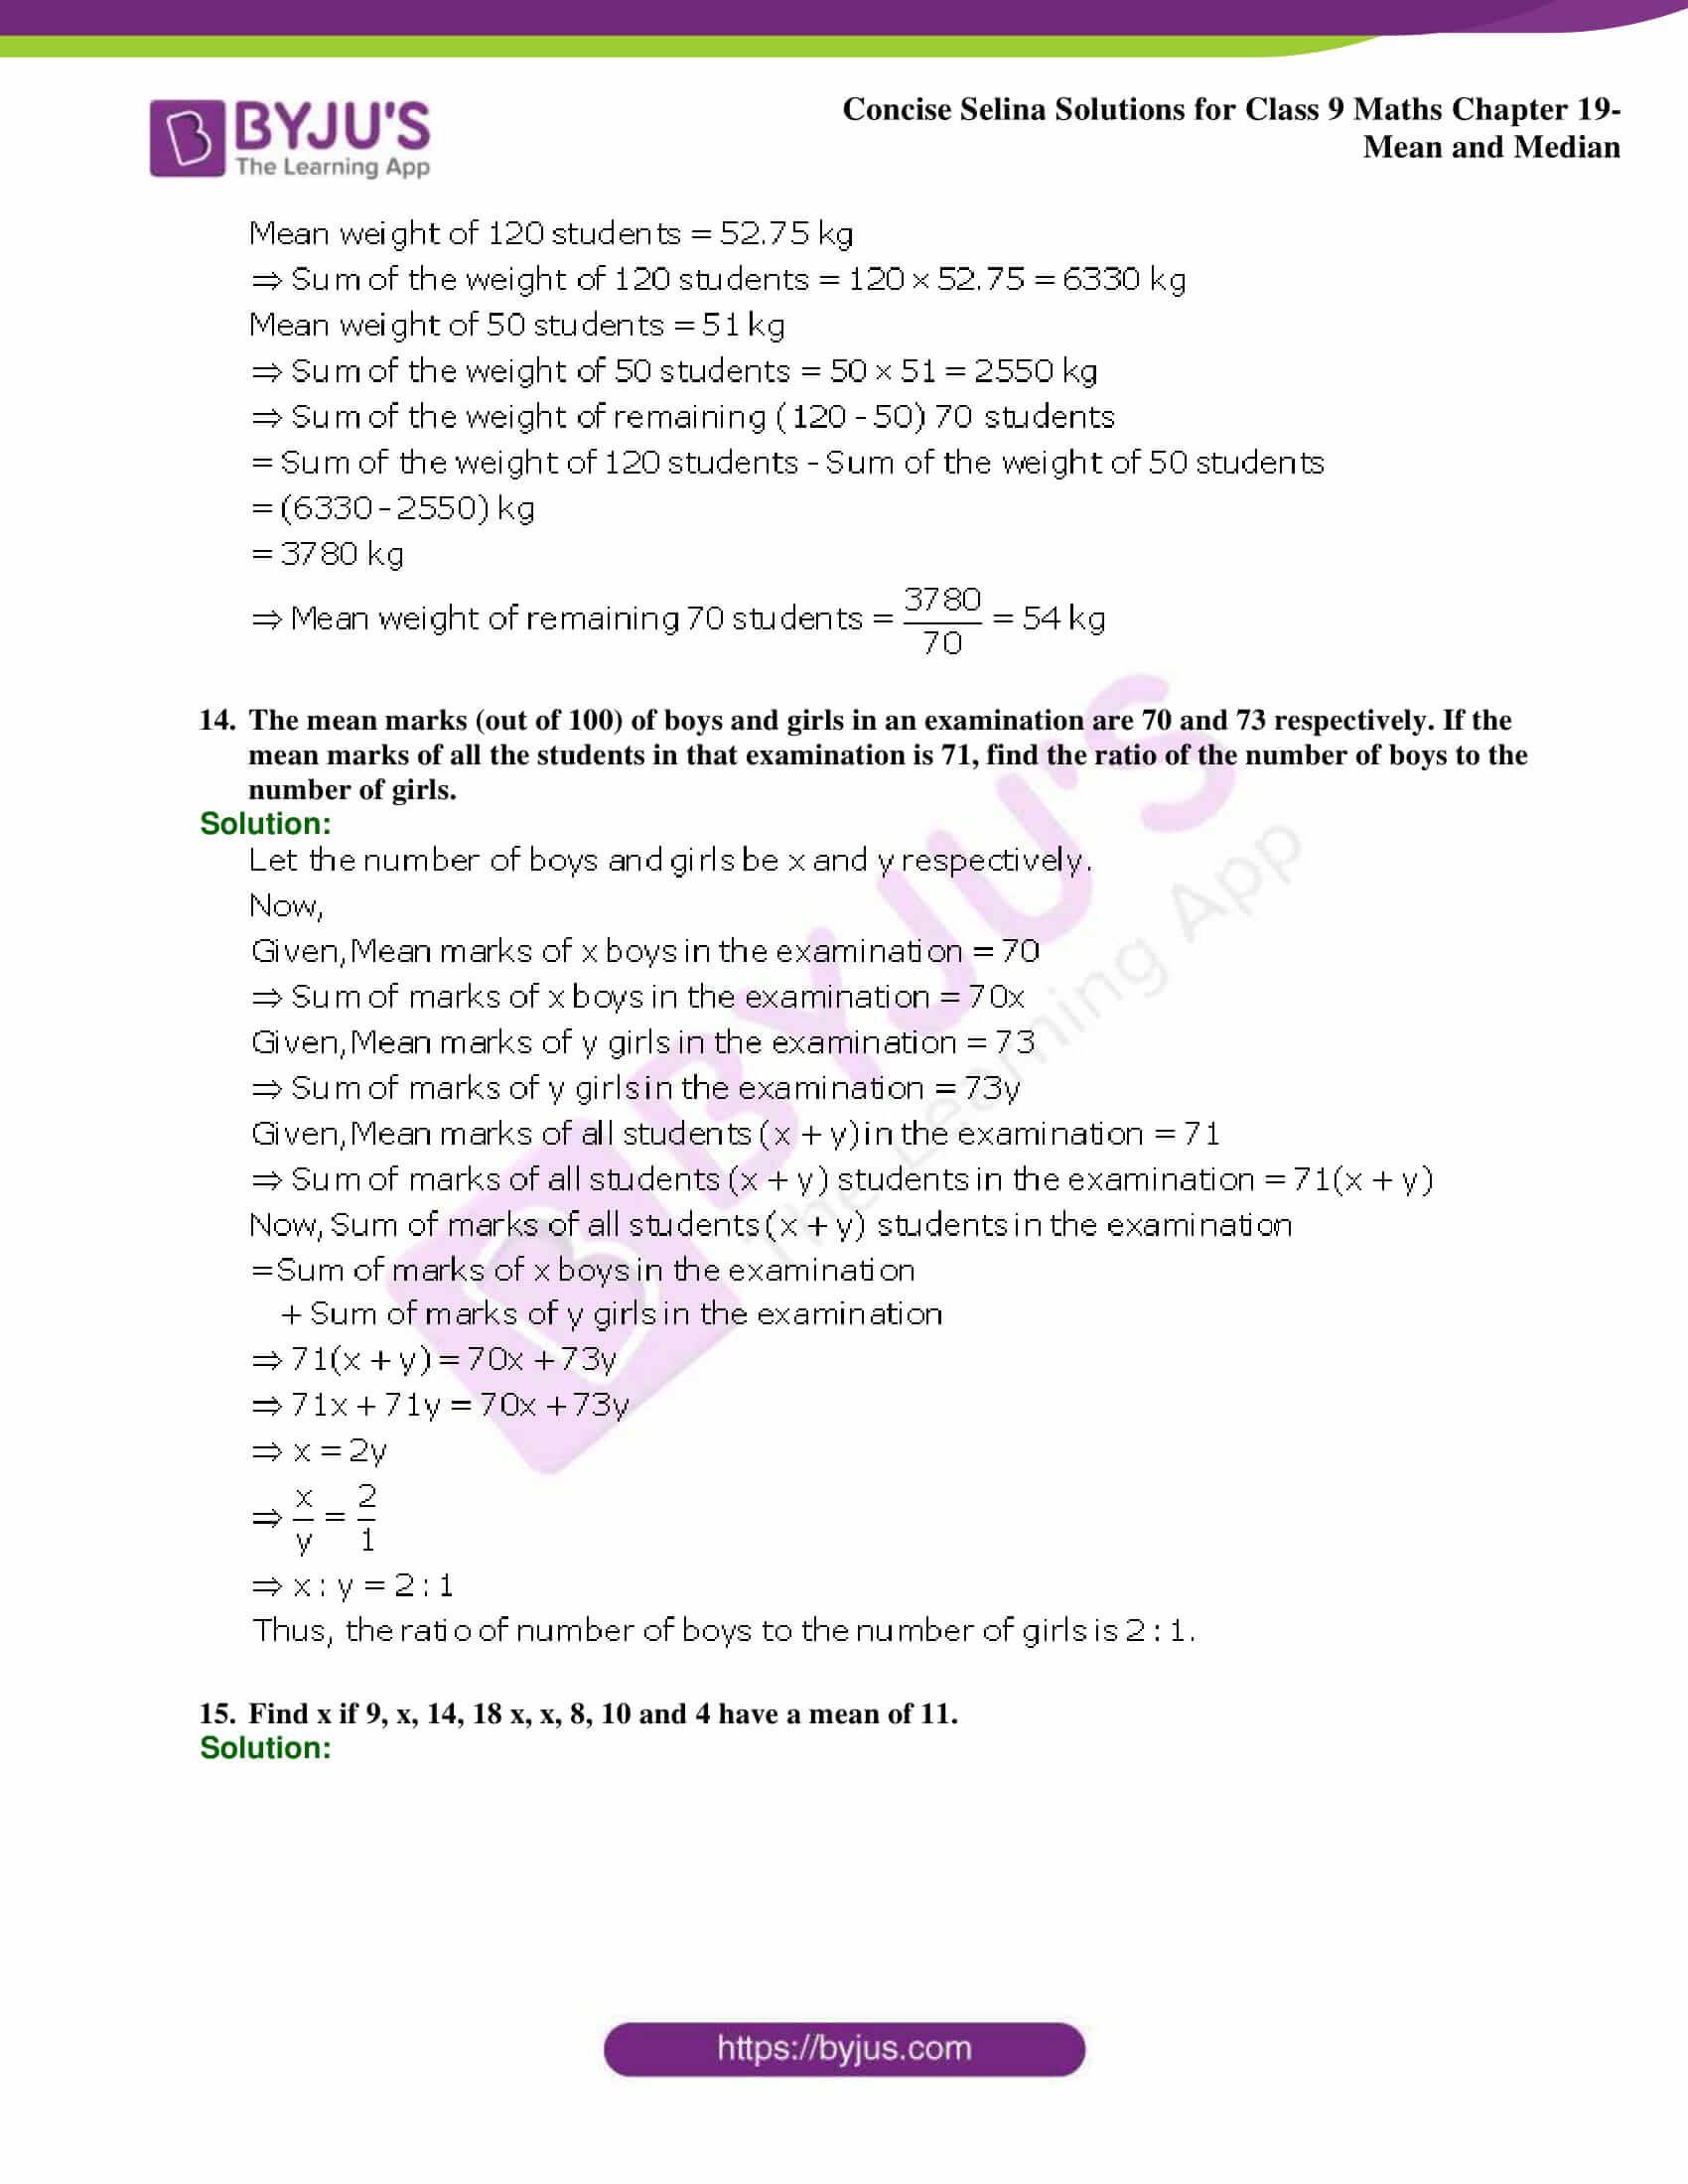 Concise Selina Solutions Class 9 Maths Chapter 19 Mean and Median part 07